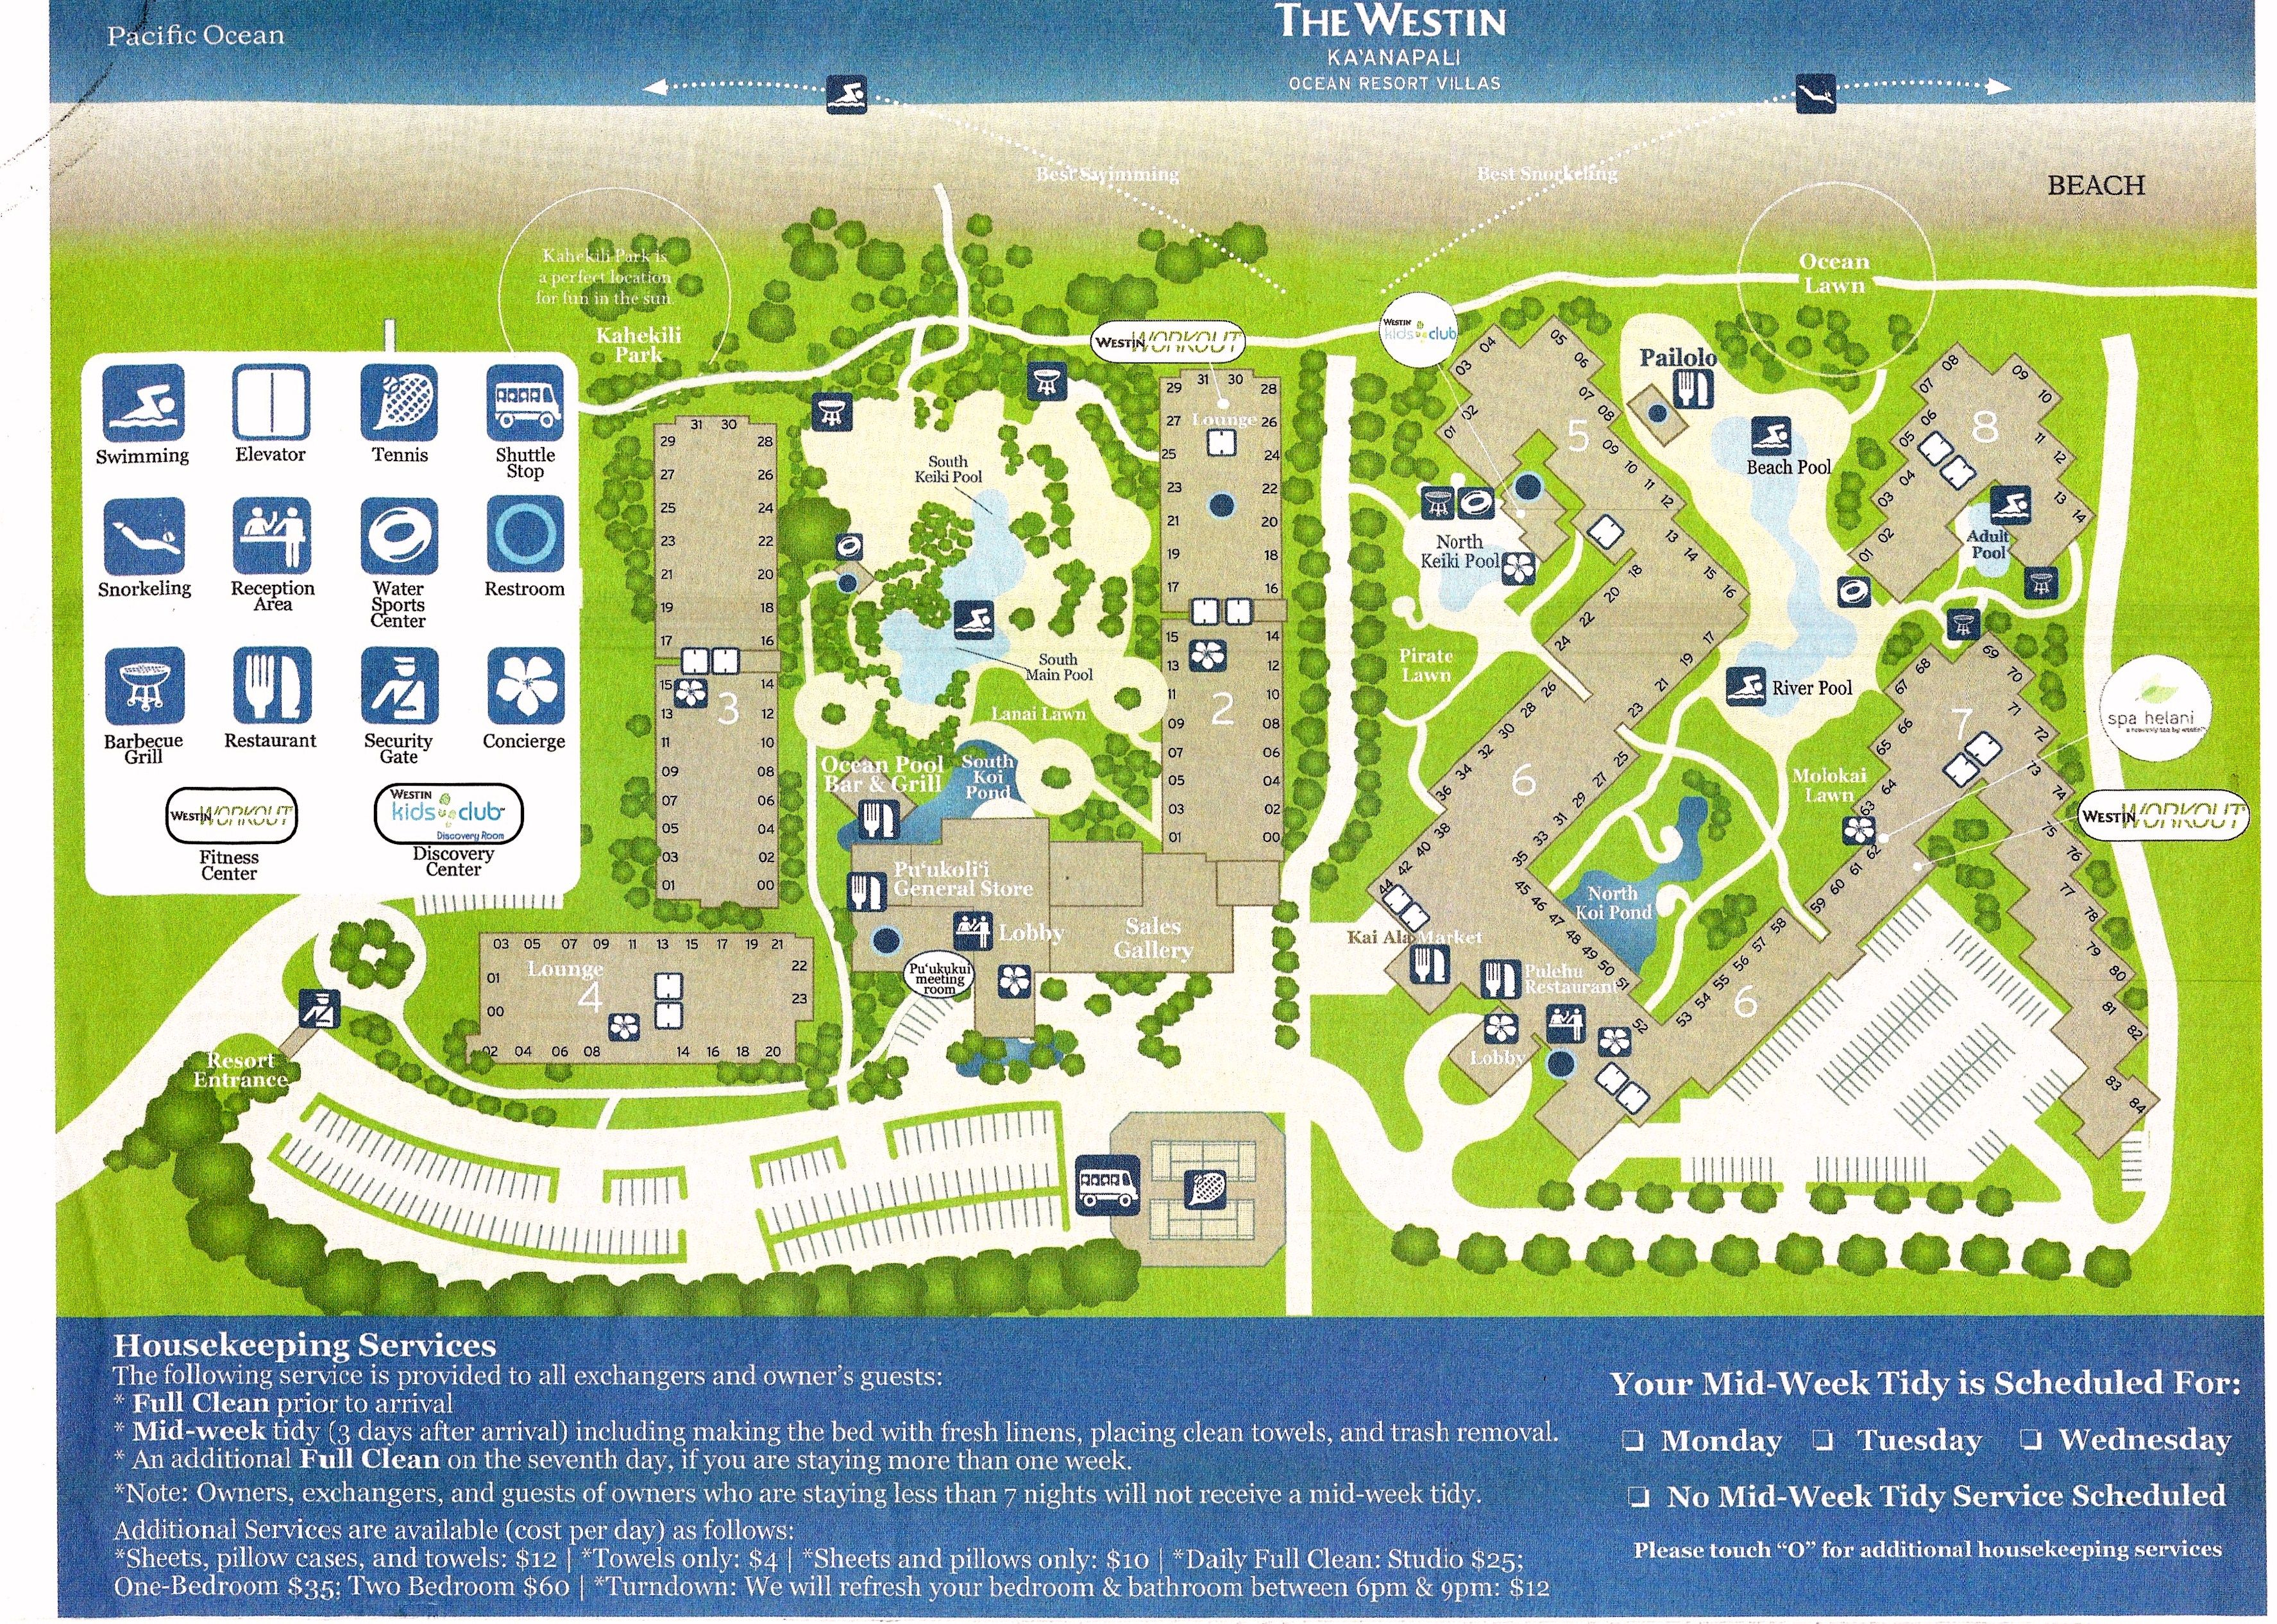 Westin Kaanapali Ocean Resort Villas Map